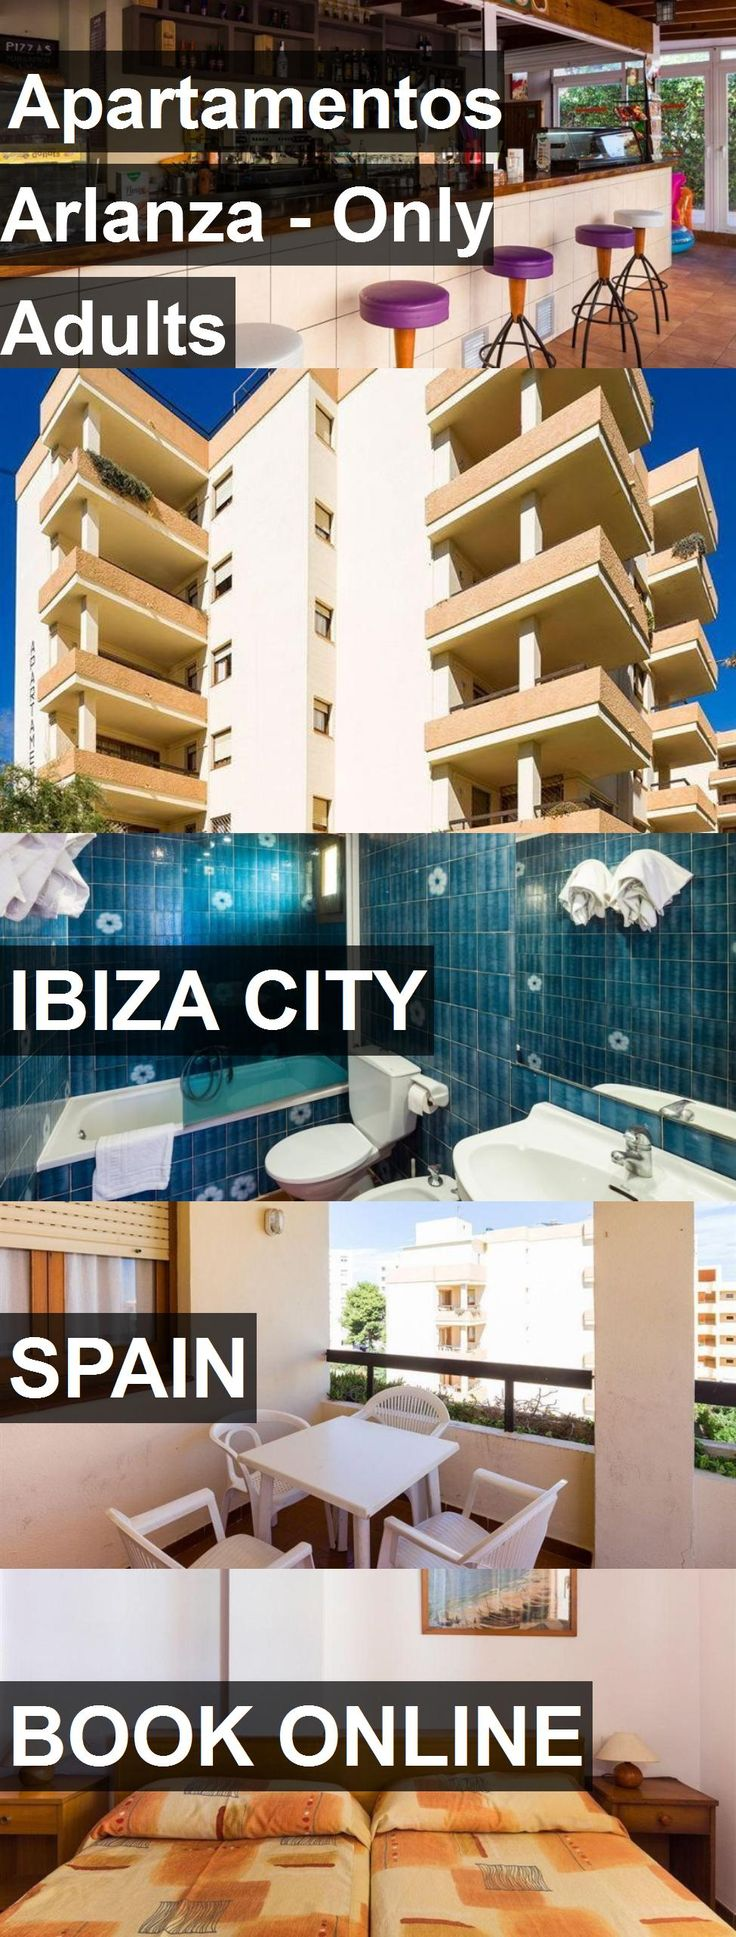 Hotel Apartamentos Arlanza - Only Adults in Ibiza City, Spain. For more information, photos, reviews and best prices please follow the link. #Spain #IbizaCity #ApartamentosArlanza-OnlyAdults #hotel #travel #vacation